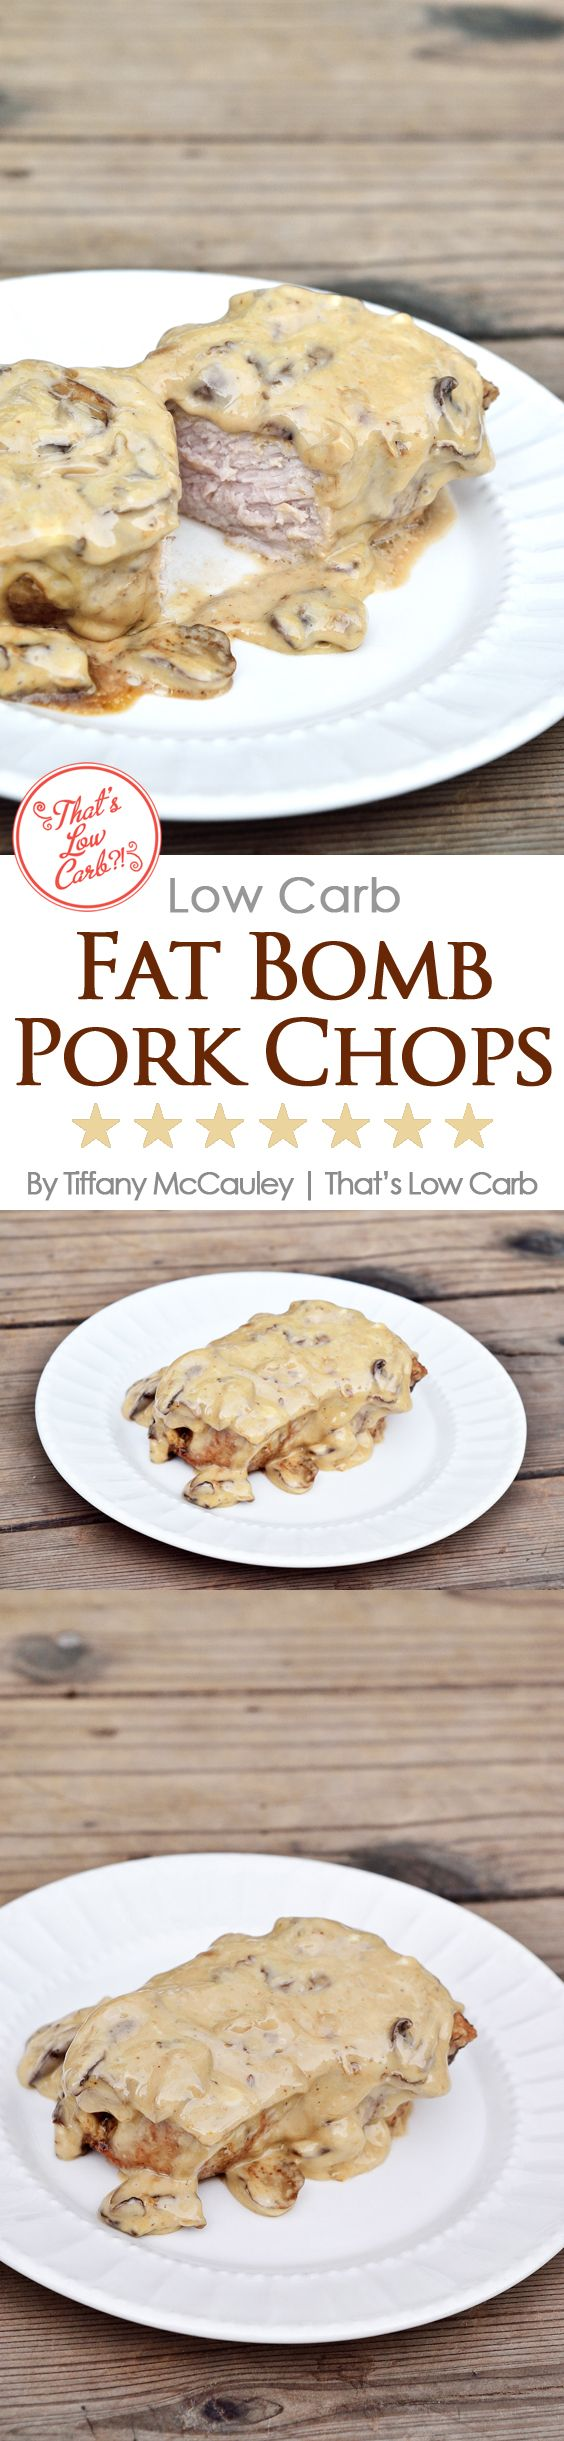 Low Carb Fat Bomb Pork Chops Recipe - Perfect for a Keto diet or just for generally getting plenty of fats in your low carb eating plan. ~ https://www.thatslowcarb.com